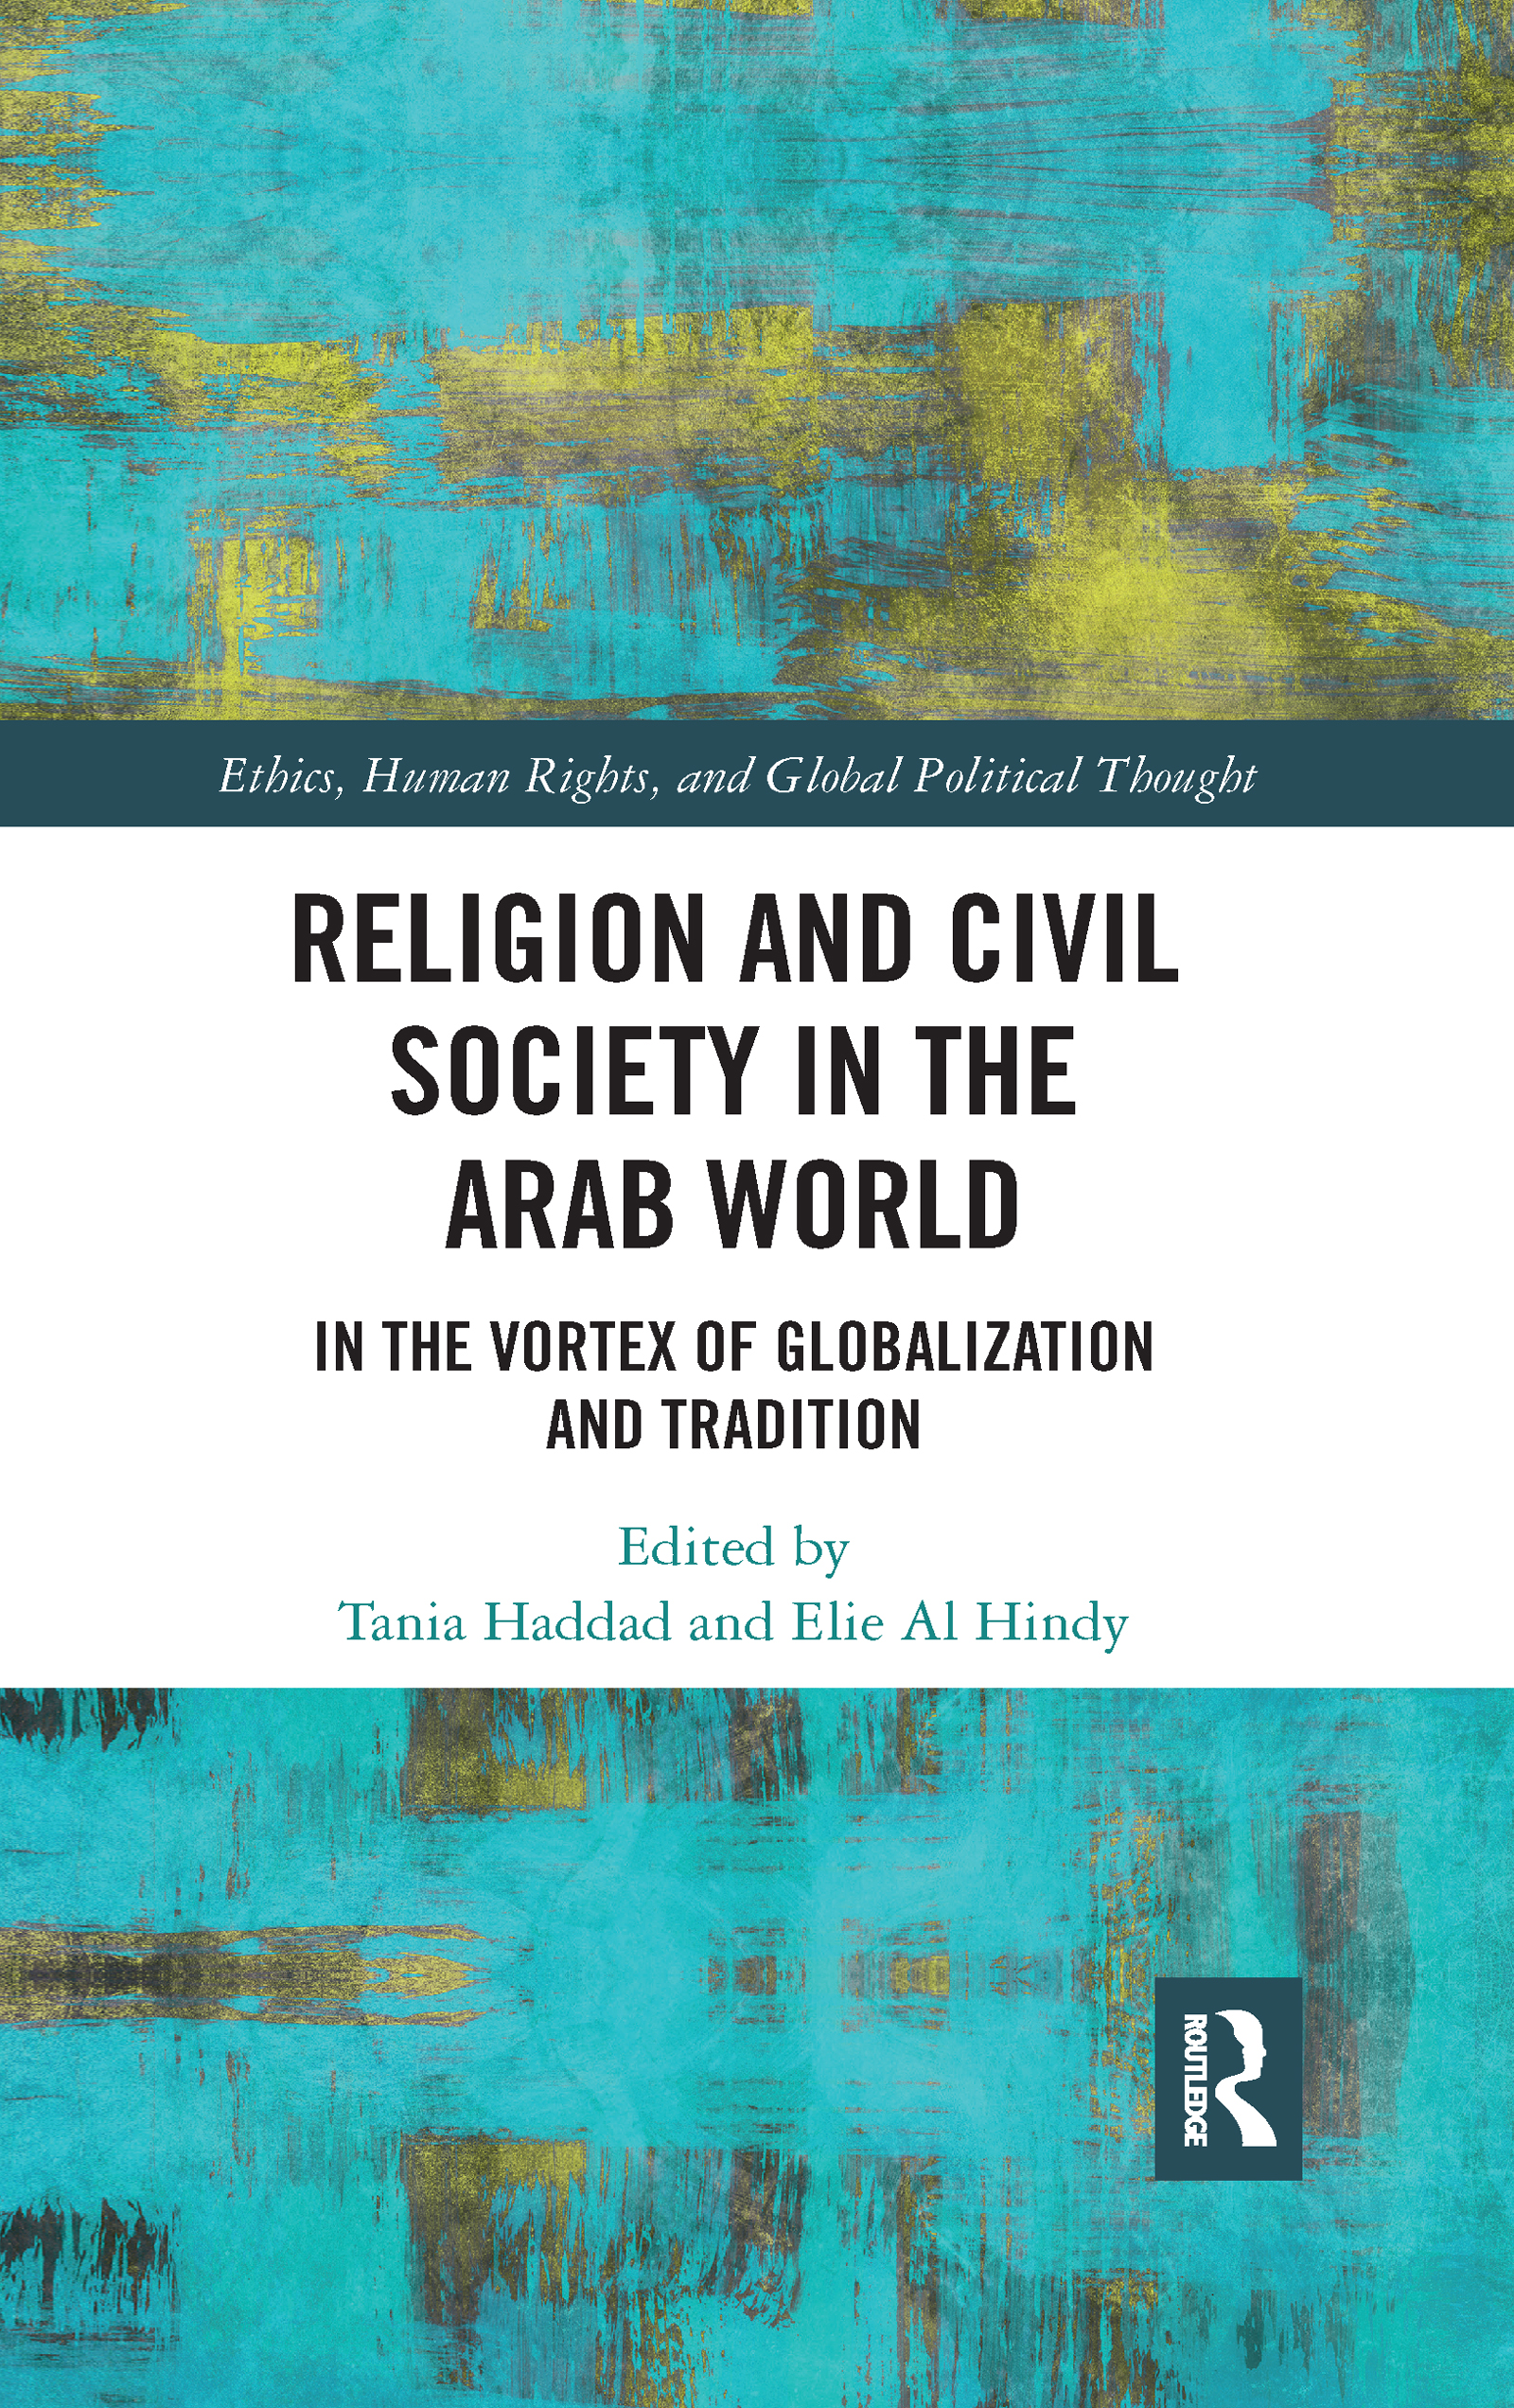 Religion and Civil Society in the Arab World